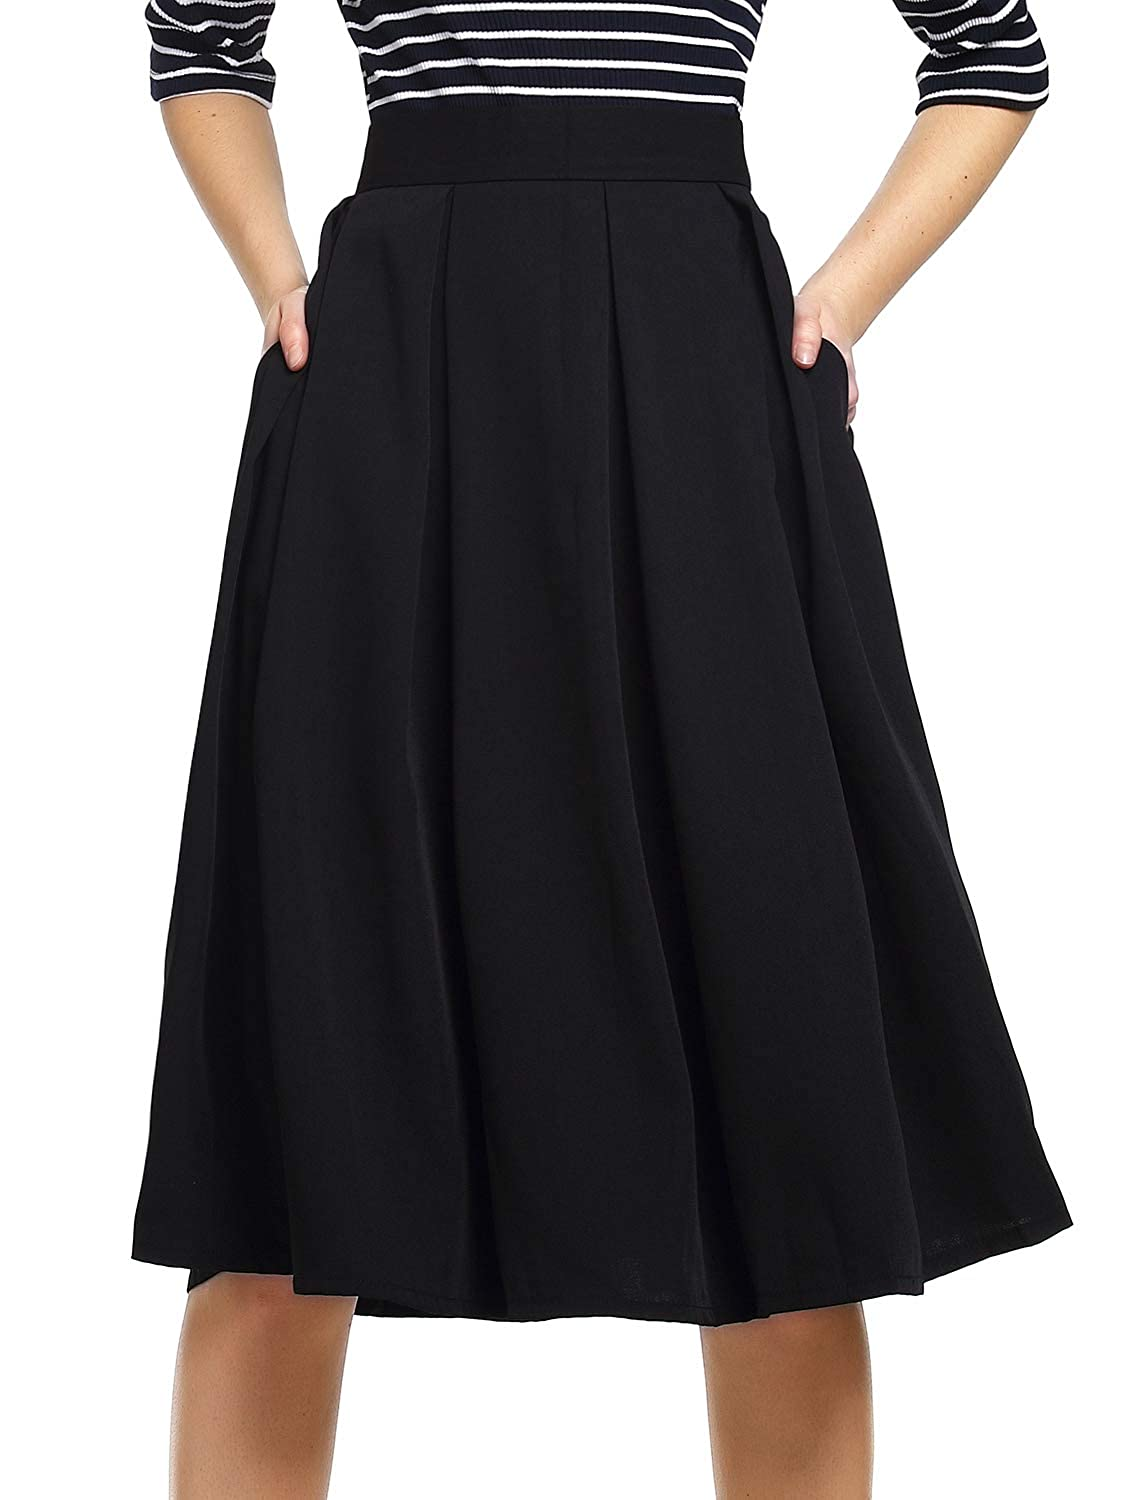 6457d12f18 Beluring Womens High Waist A-Line Skater Skirt with Pockets at Amazon  Women's Clothing store: